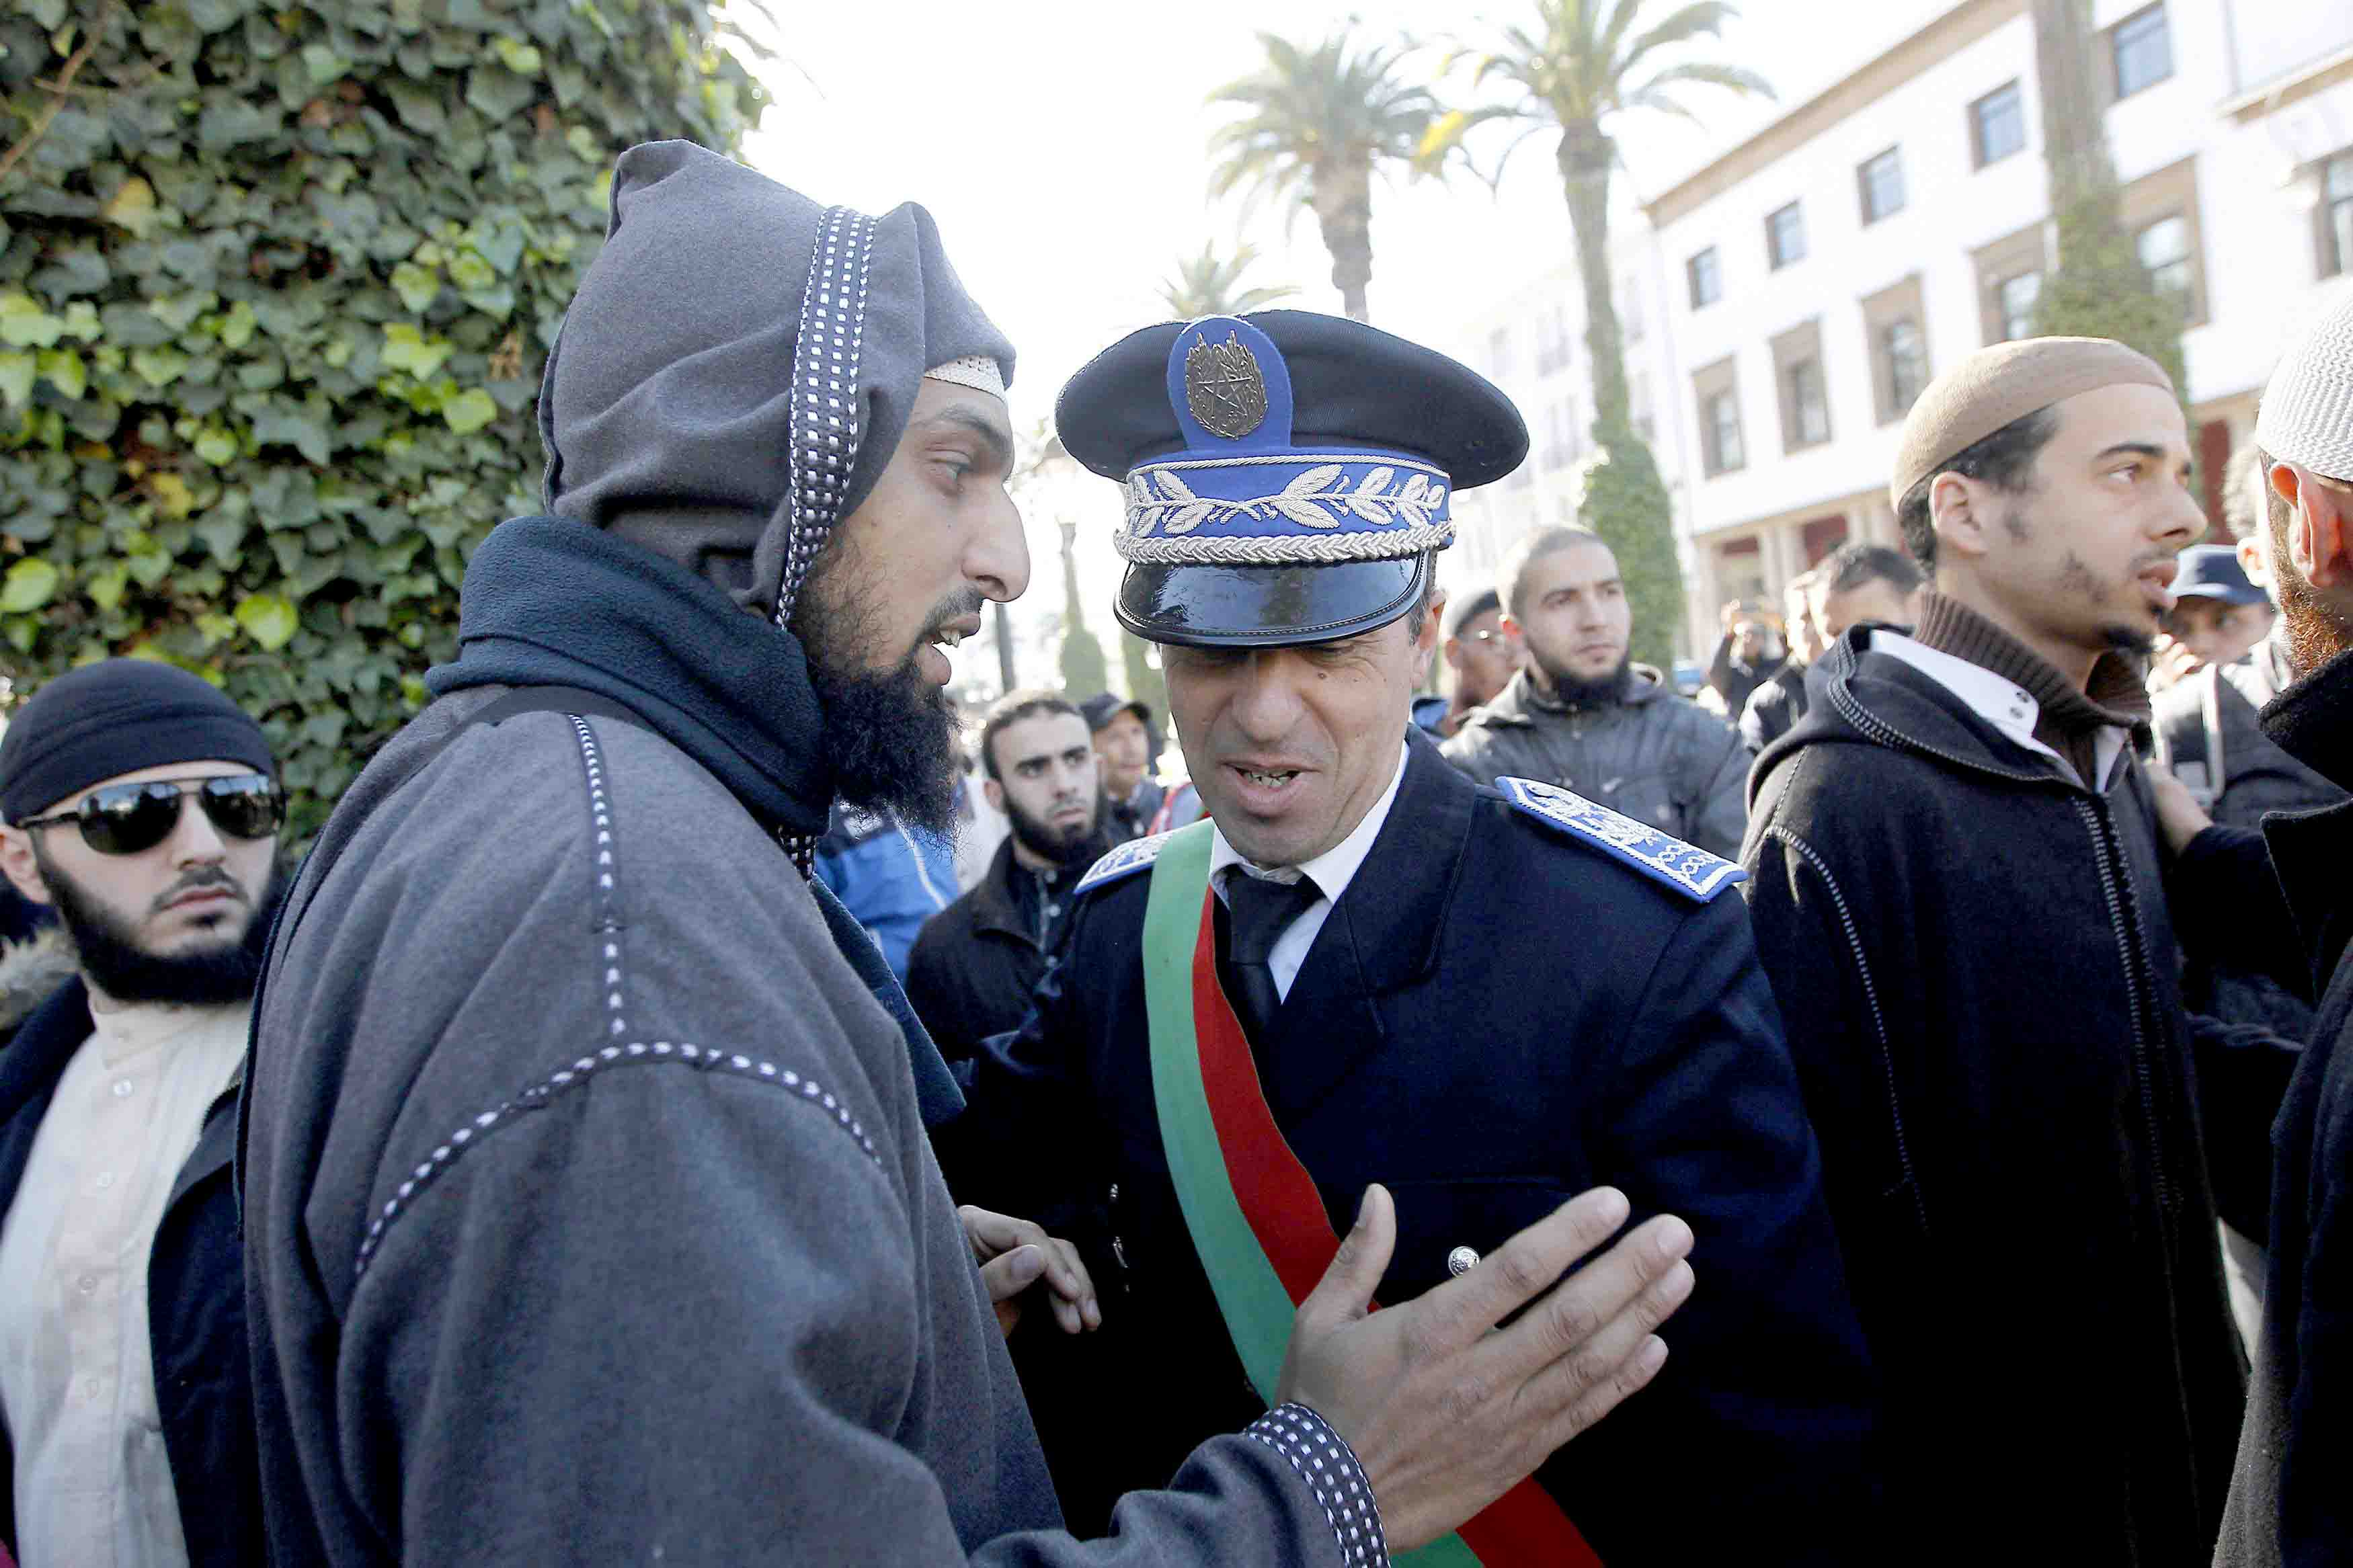 A 2017 file picture shows a Salafist protester talking to a police officer during a demonstration against the ban on the sale and manufacturing of the burqa in Rabat. (Reuters)